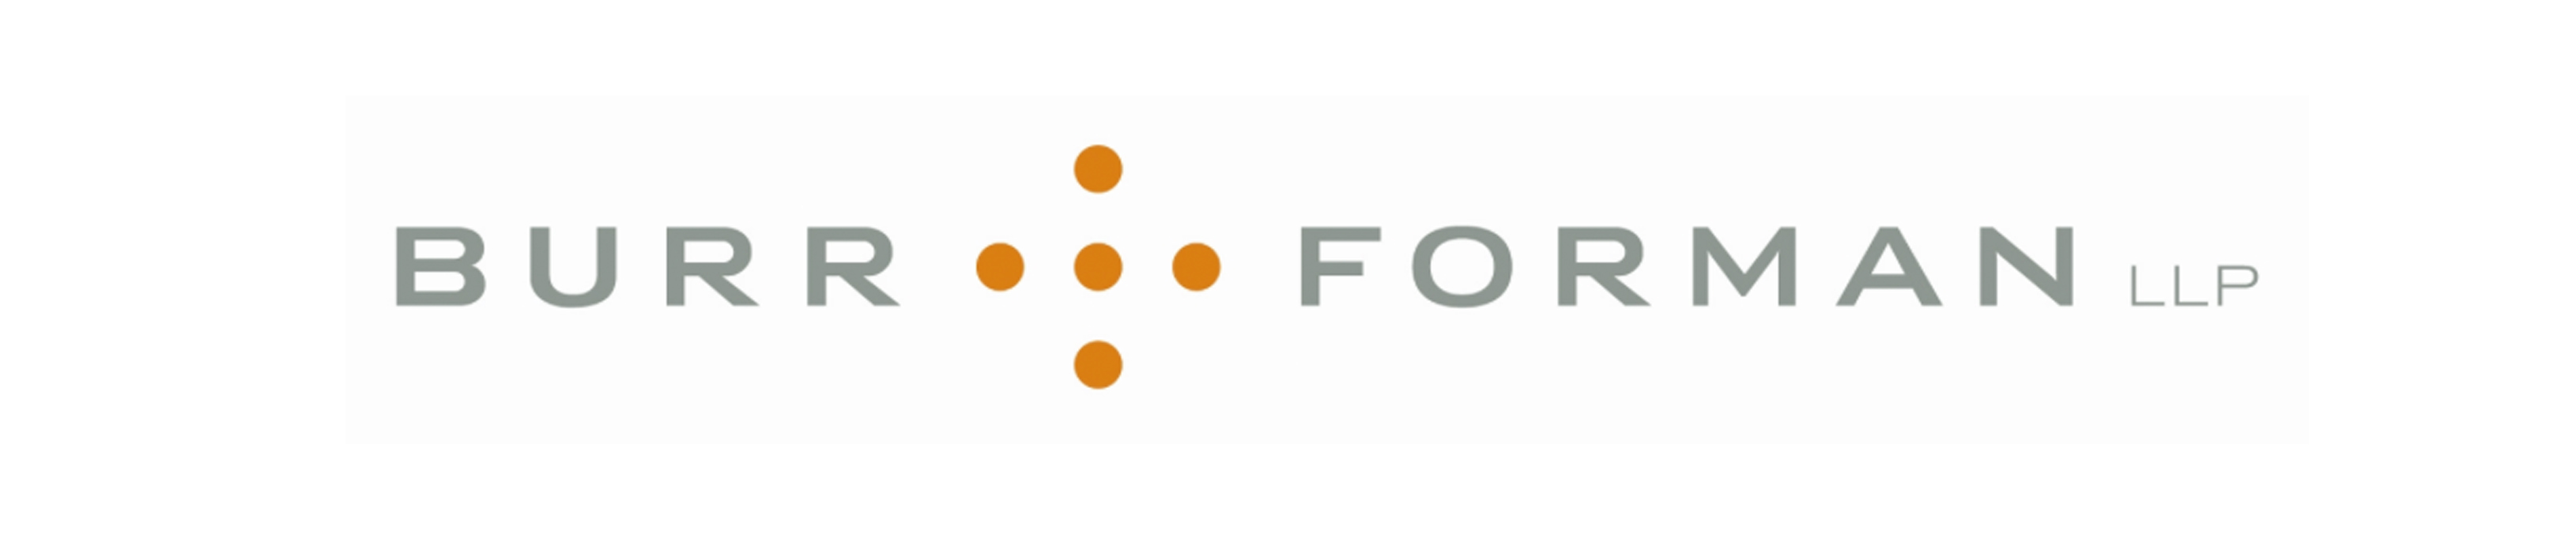 Burr Forman logo in gray and orange on a white background